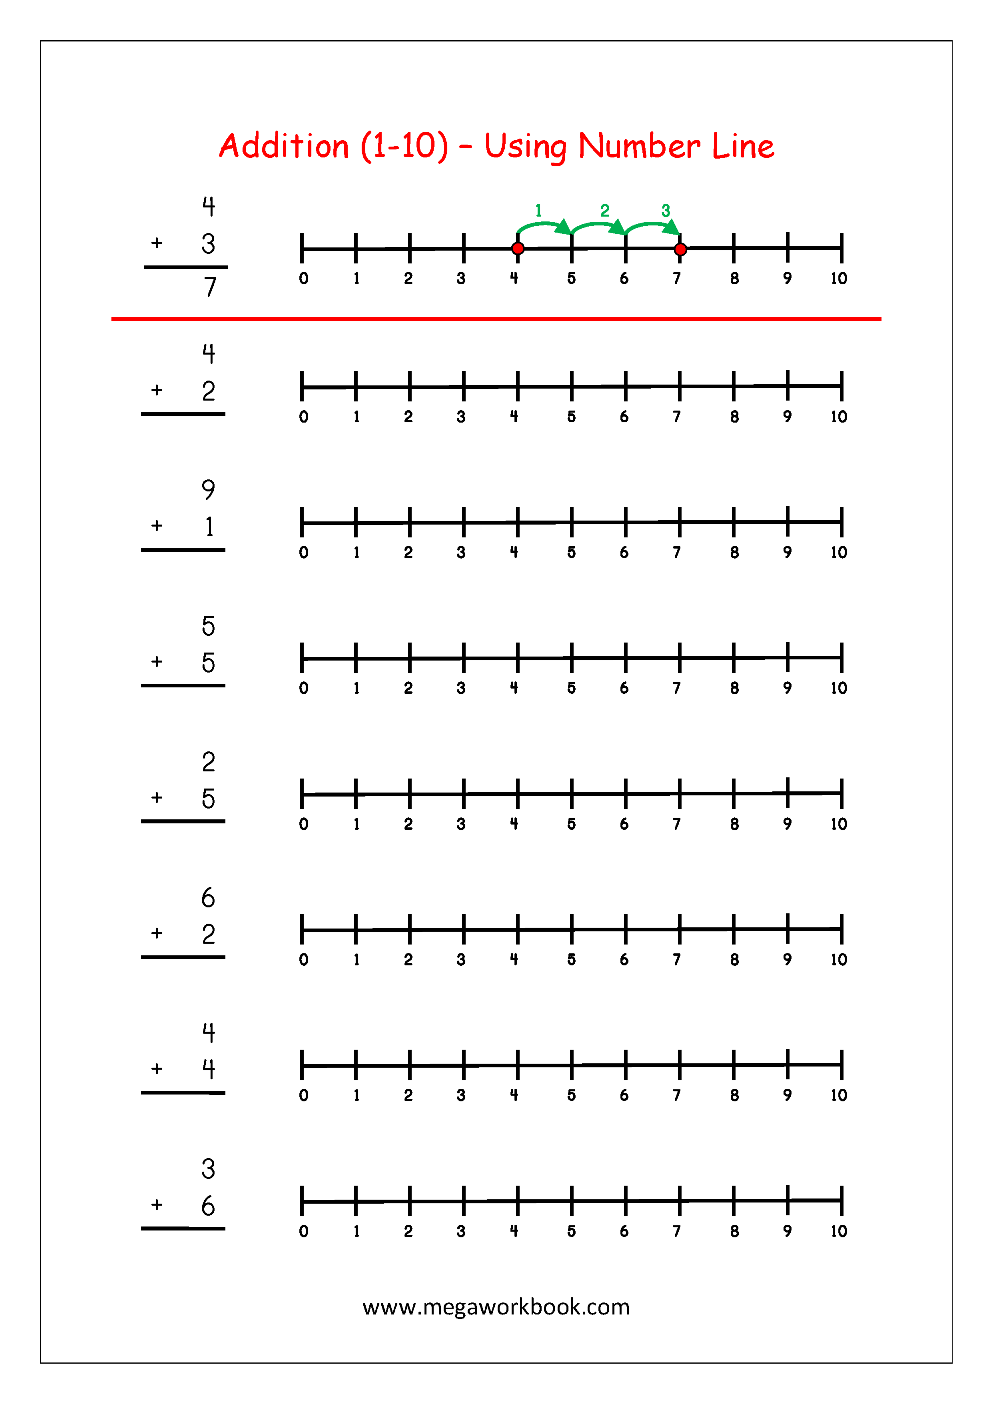 Free Printable Number Addition Worksheets 1 10 For Kindergarten And Grade 1 Addition On Number Line Addition With Pictures Objects Megaworkbook